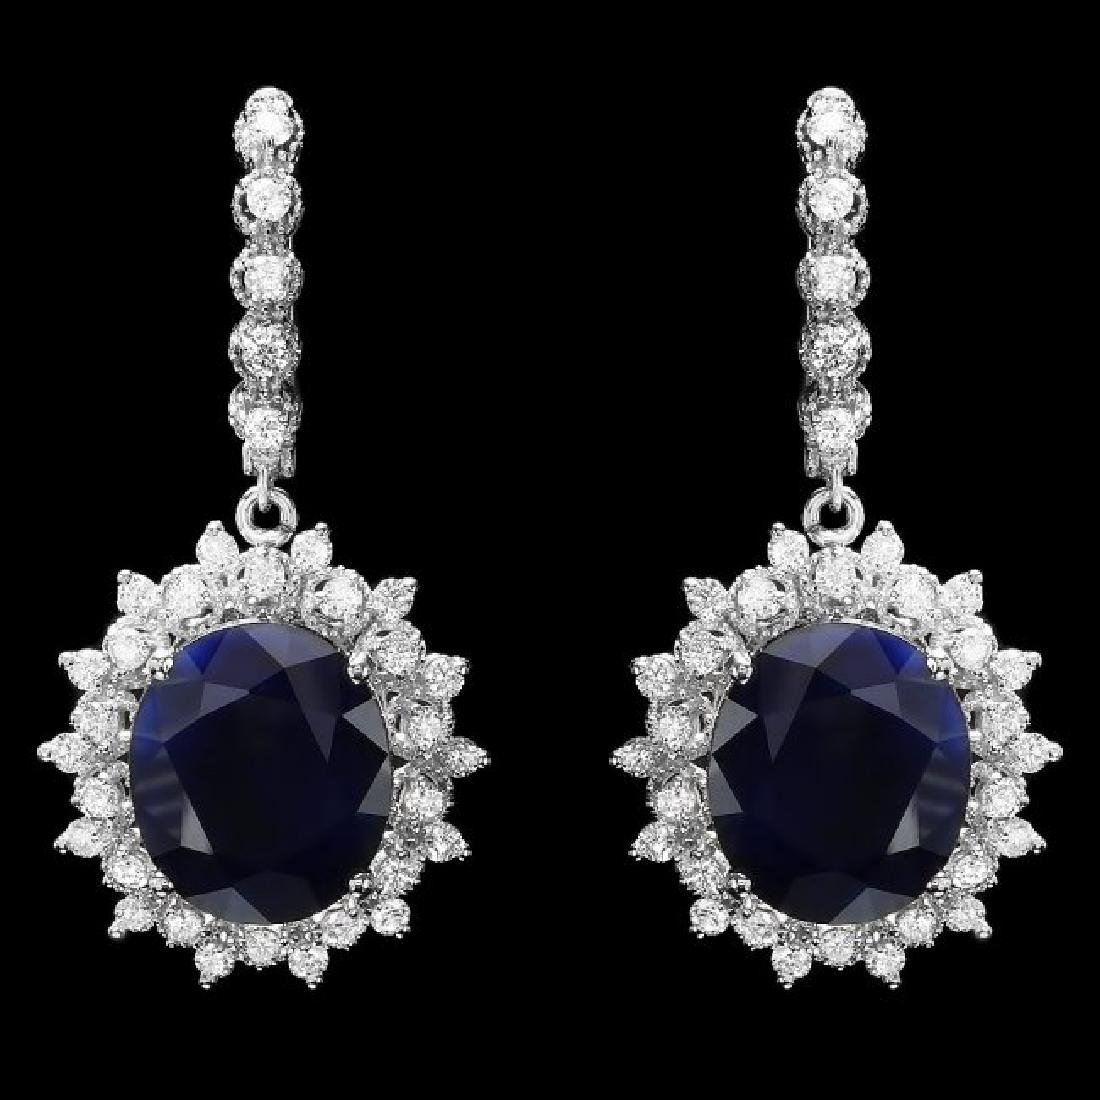 14k Gold 17ct Sapphire 1.80ct Diamond Earrings